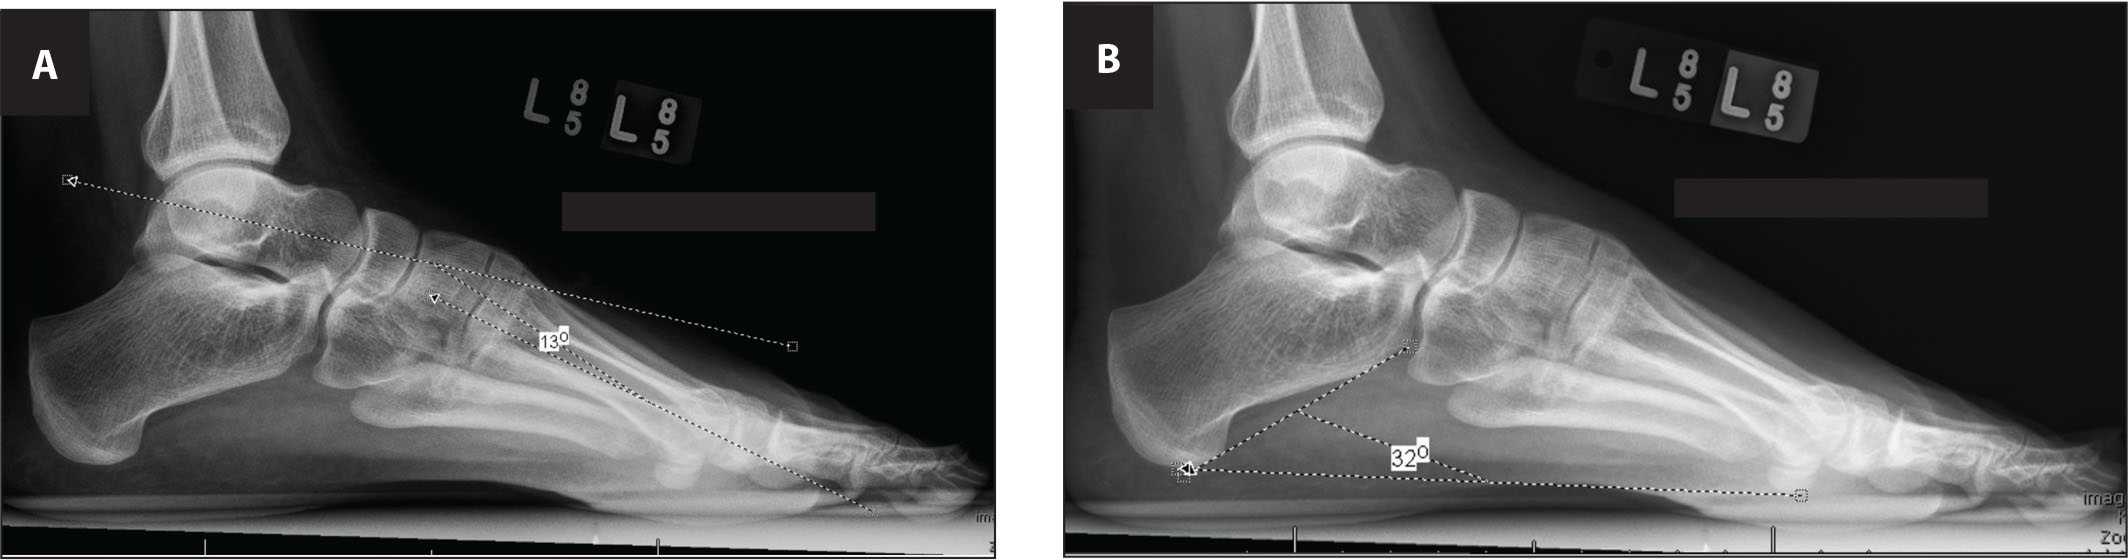 (A) Lateral weight-bearing radiograph of the foot showing Meary's angle. (B) Lateral weight-bearing radiograph of the foot showing calcaneal pitch.